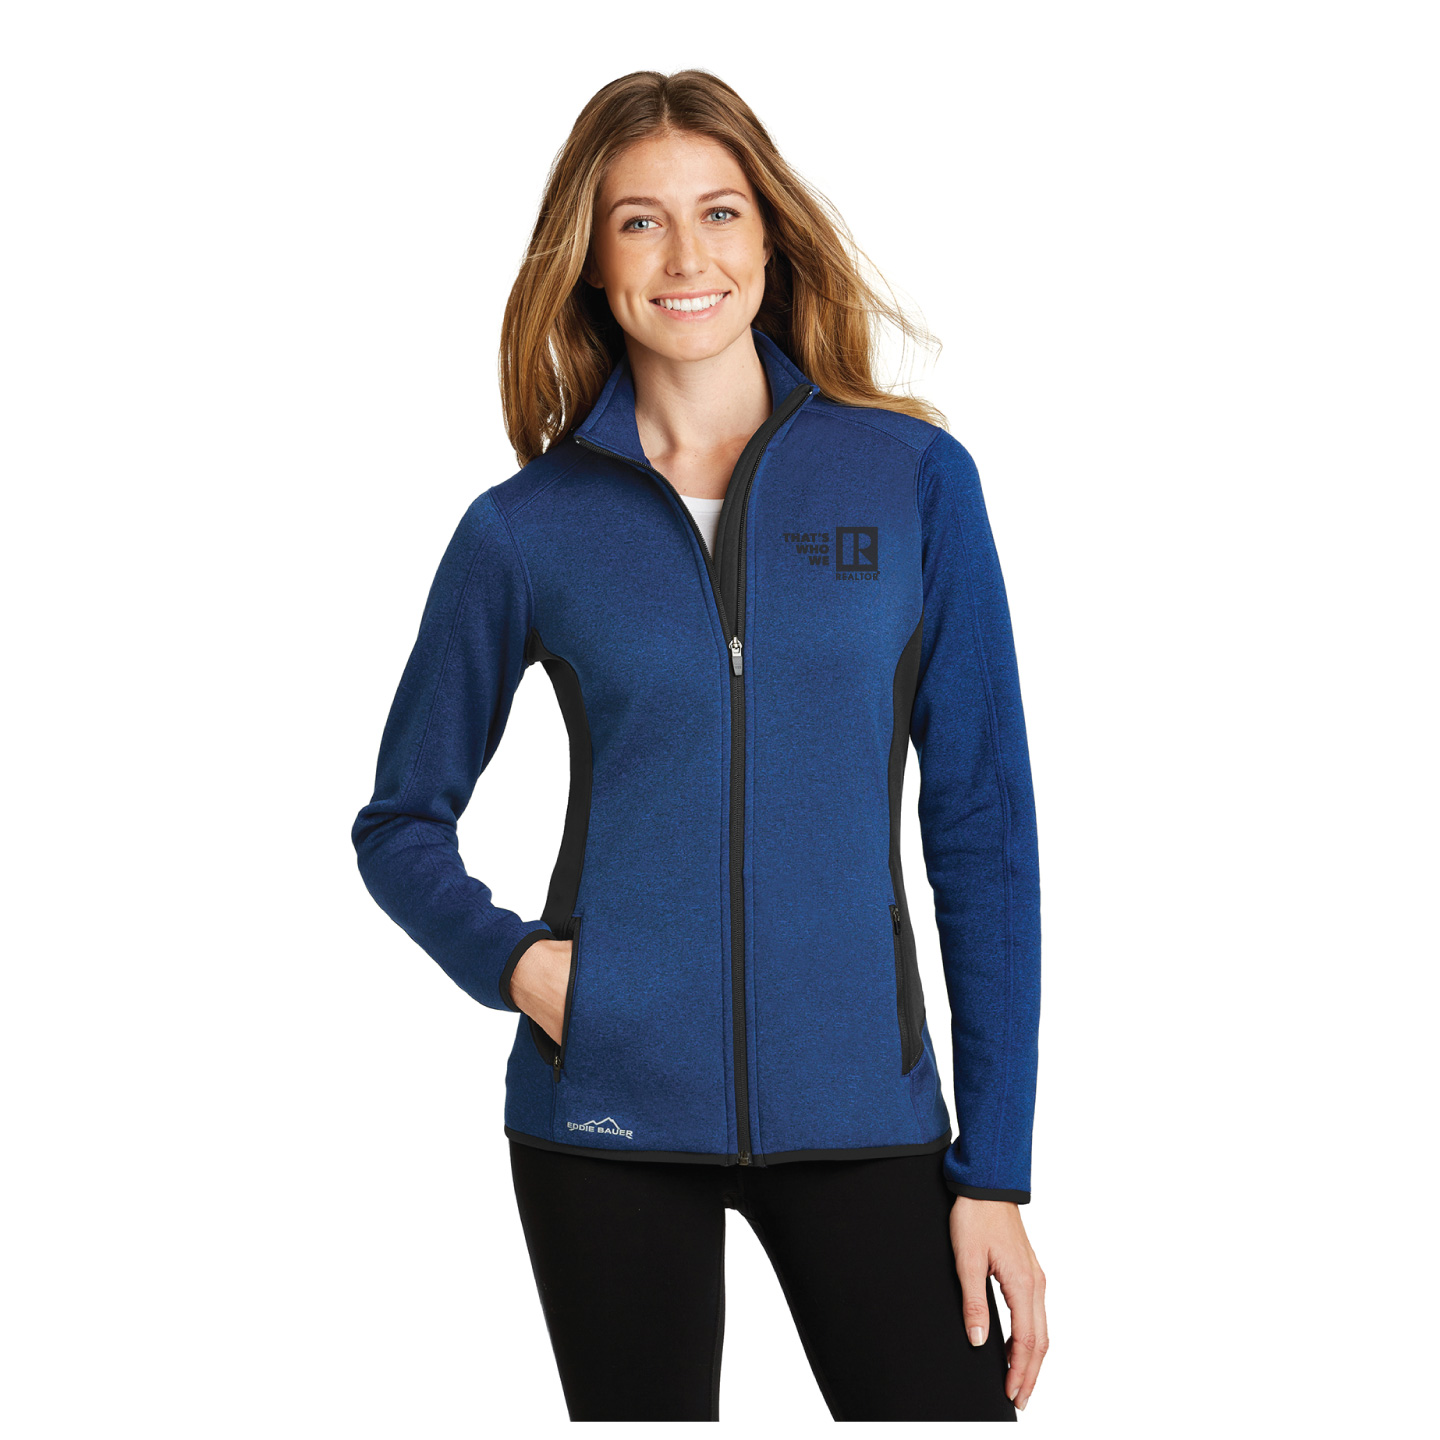 """Thats Who We R"" Ladies Eddie Bauer Fleece Jacket  Jacket, Thats Who, Fleece, Brand, Warm, TWWR, Gift, President, Board, Store, Association,"